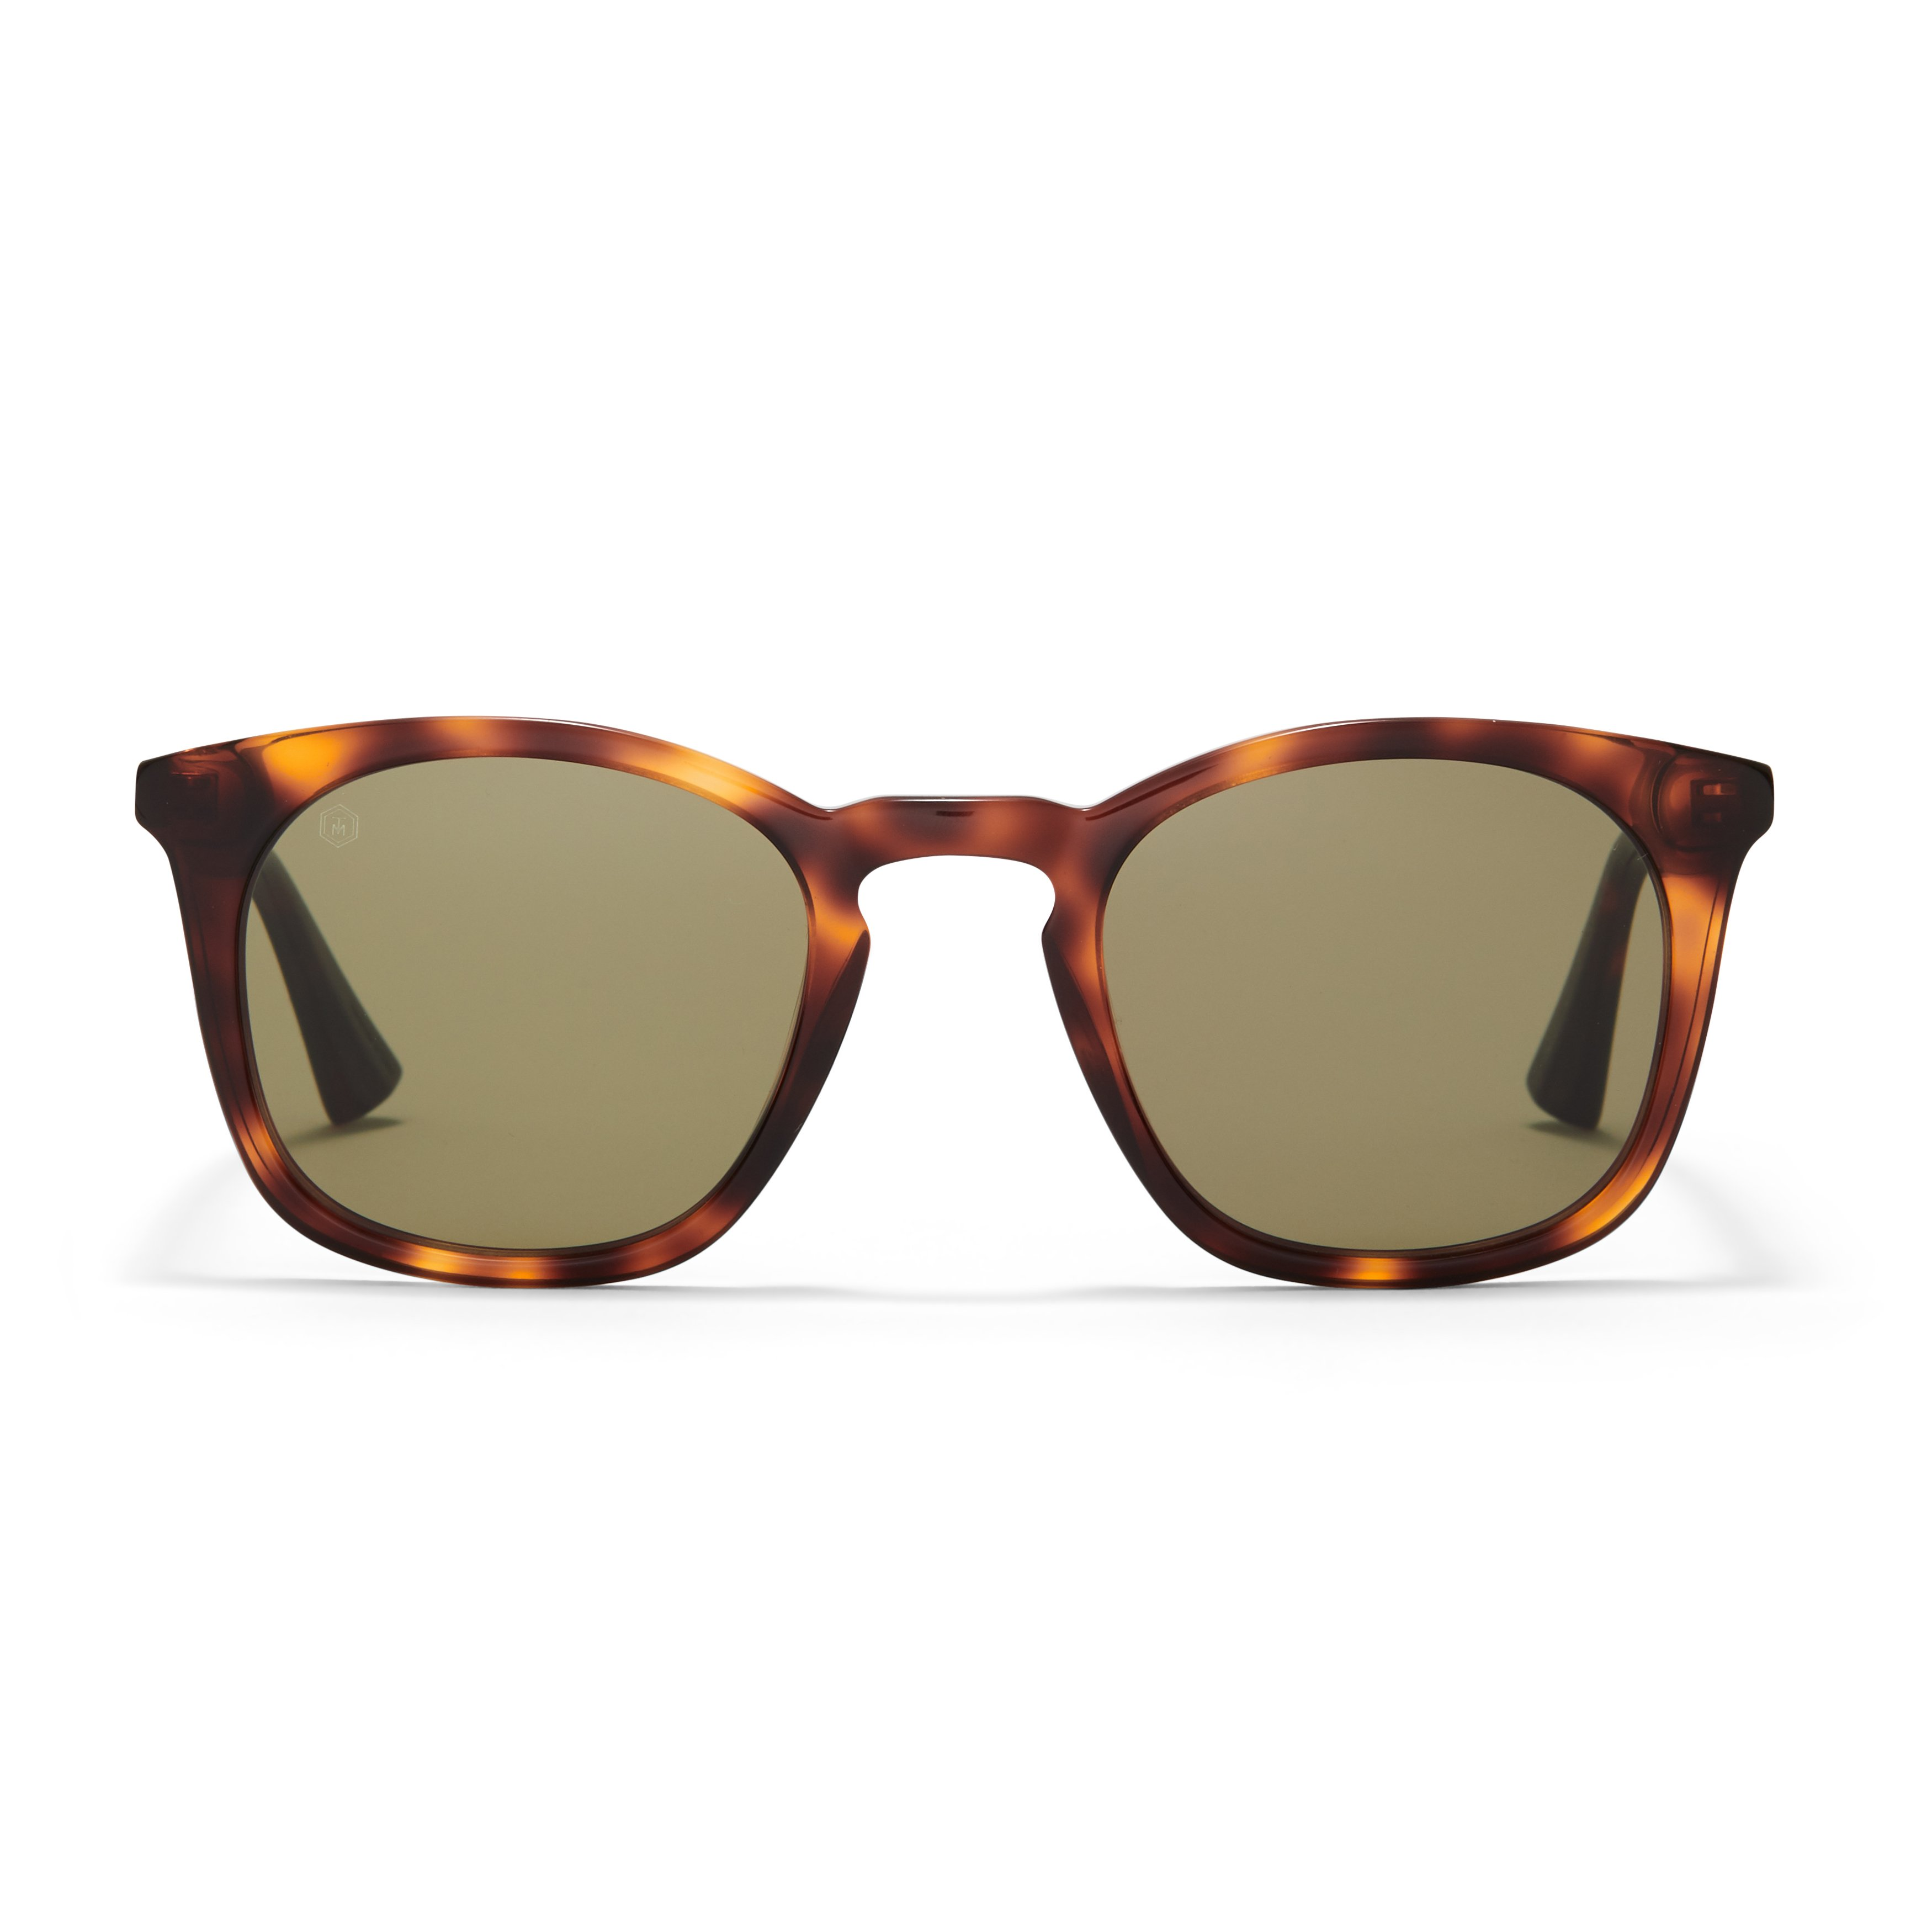 Taylor Morris Louis Orson Sunglasses, Non-prescription